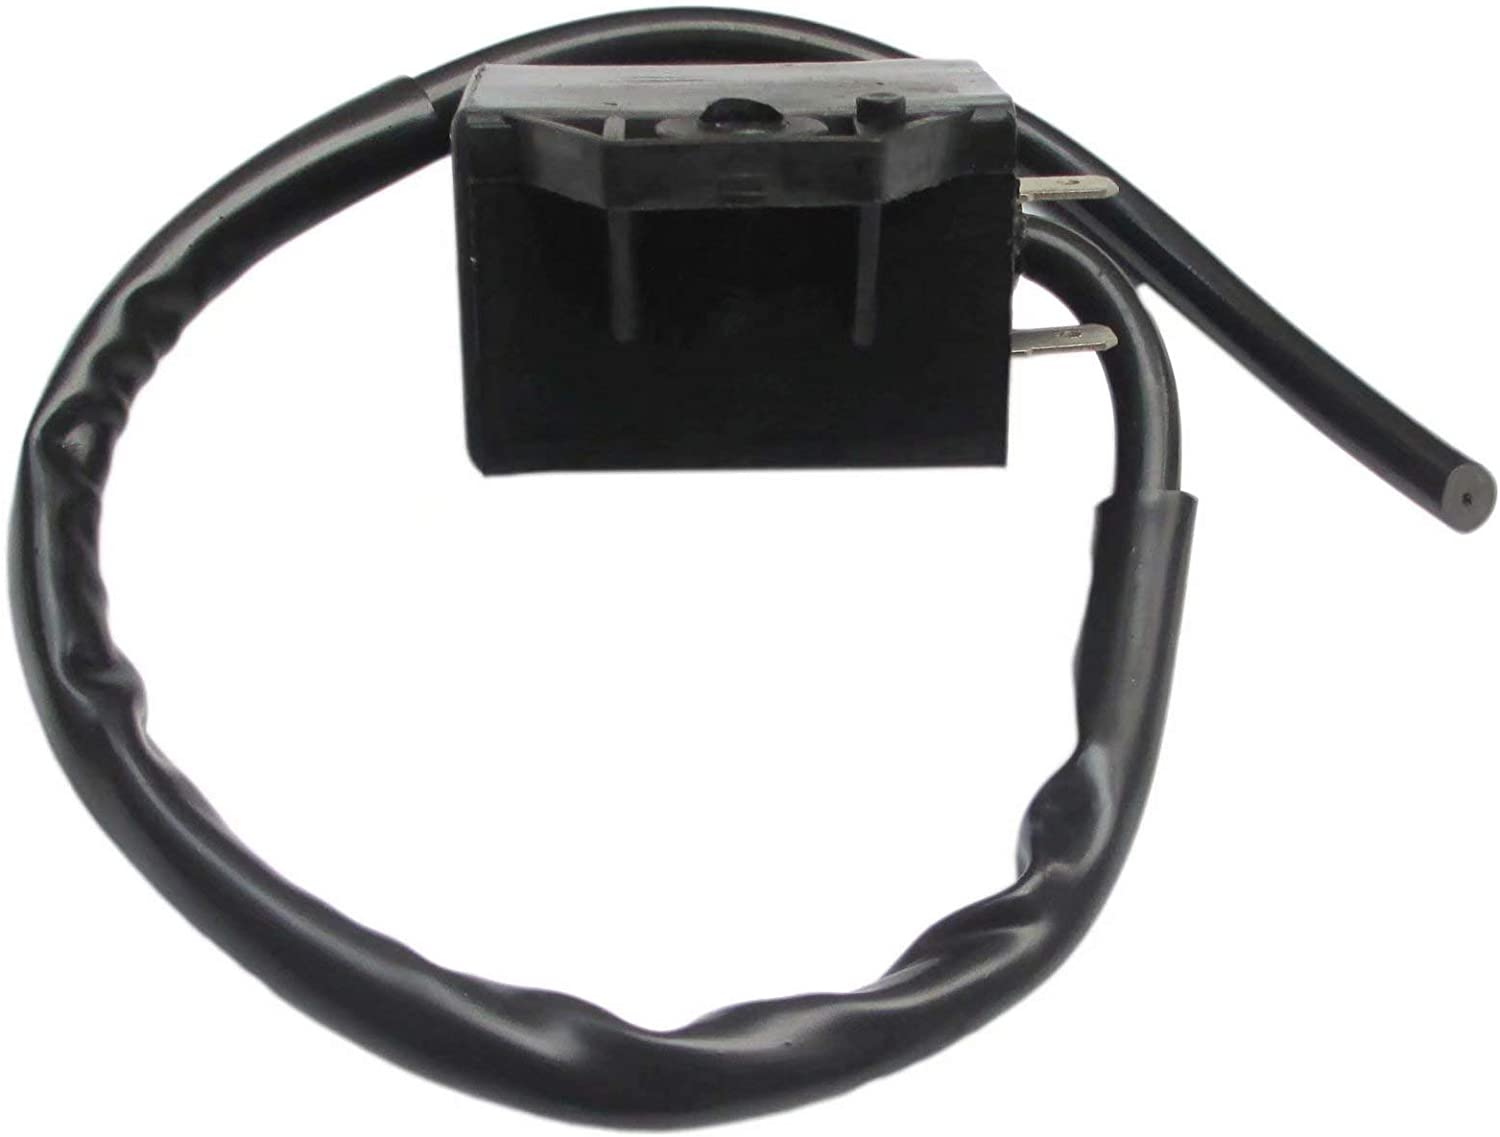 IGNITION COIL FOR POLARIS RANGER 500 2X4 4X4 6X6 2004 2005 2006 2007 2008 2009